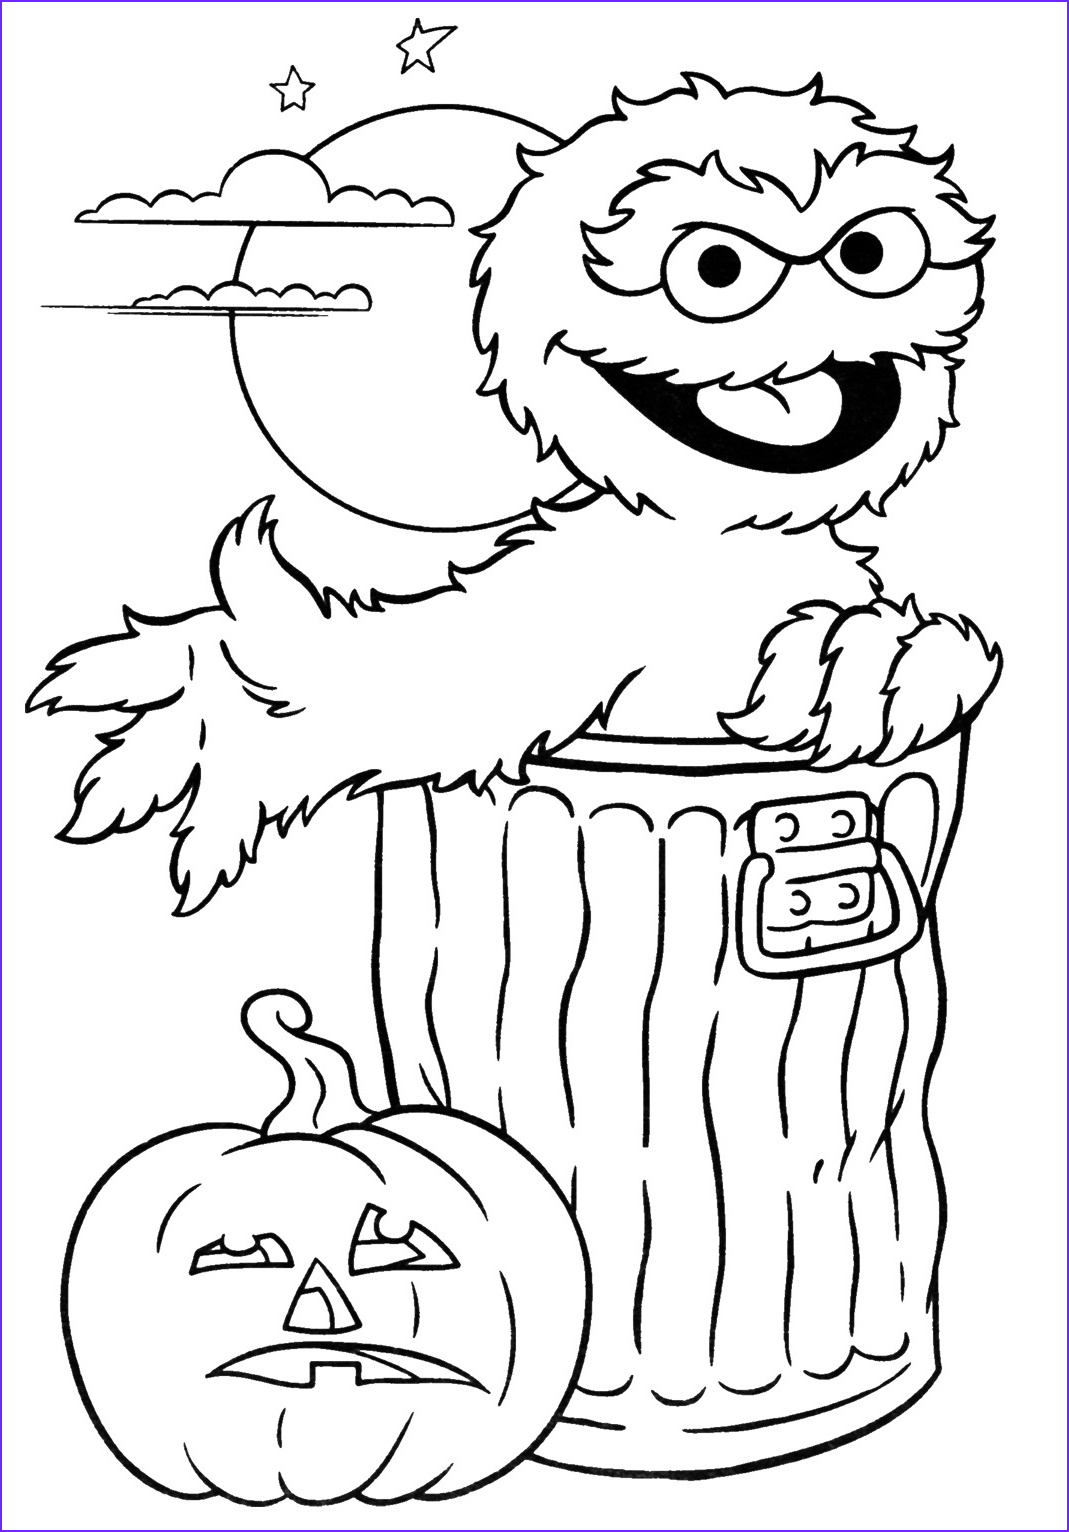 Halloween Coloring Luxury Gallery 24 Free Halloween Coloring Pages for Kids Honey Lime